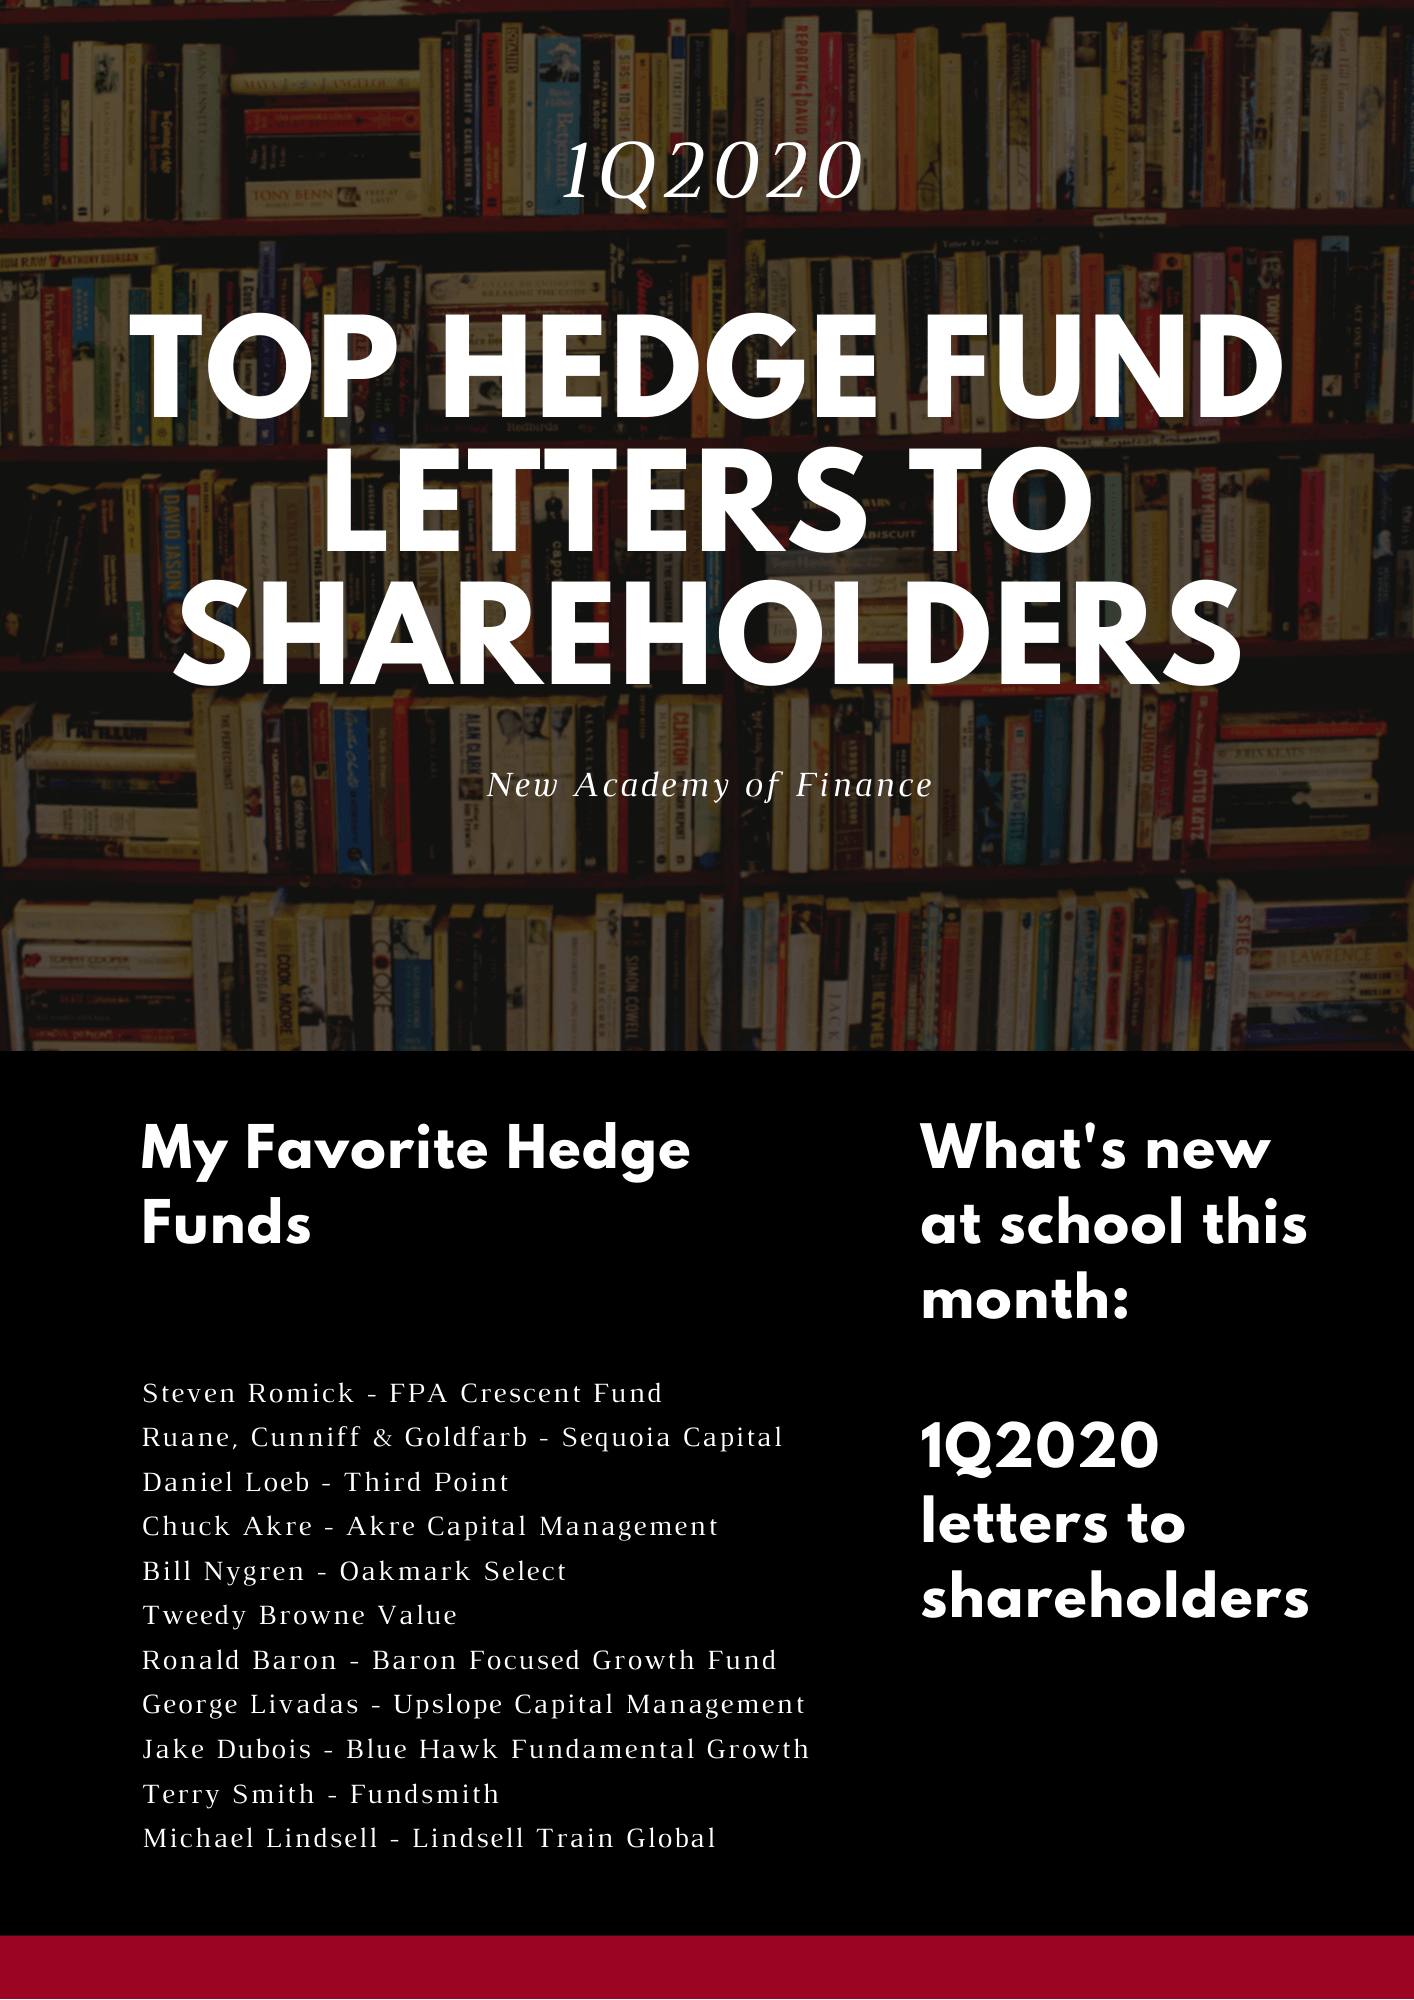 1Q 2020 Top Hedge Fund Letters to Shareholders